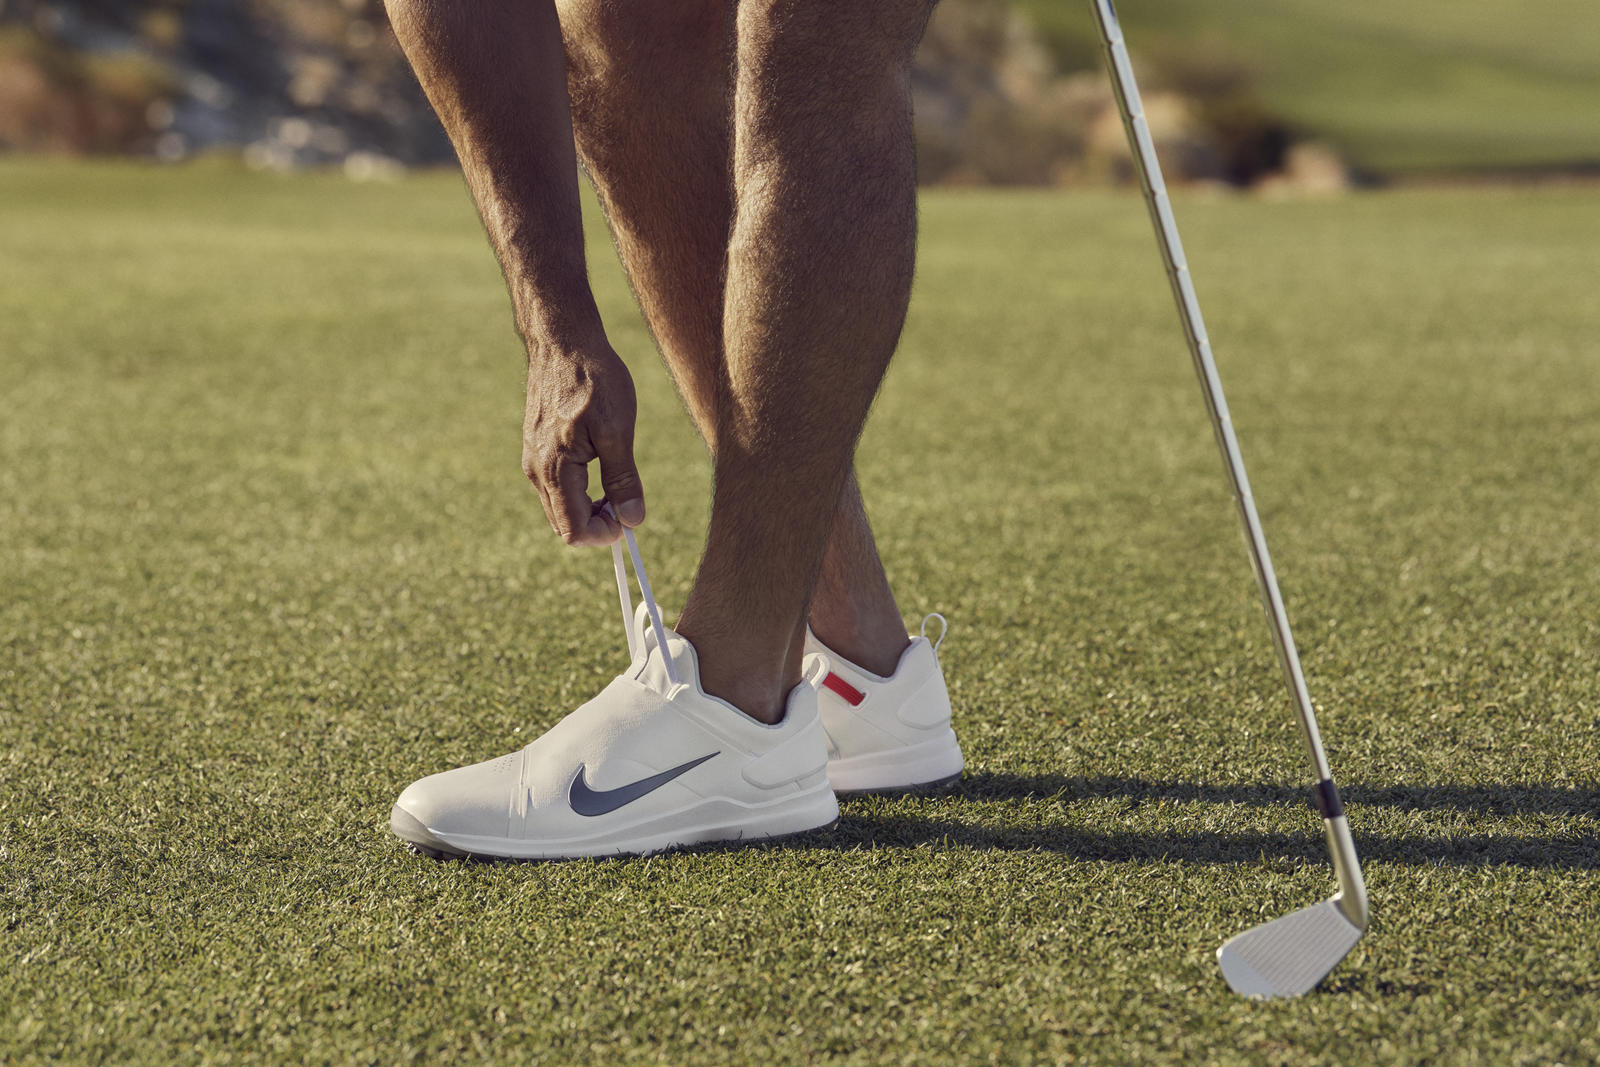 nike tw 19 golf shoes